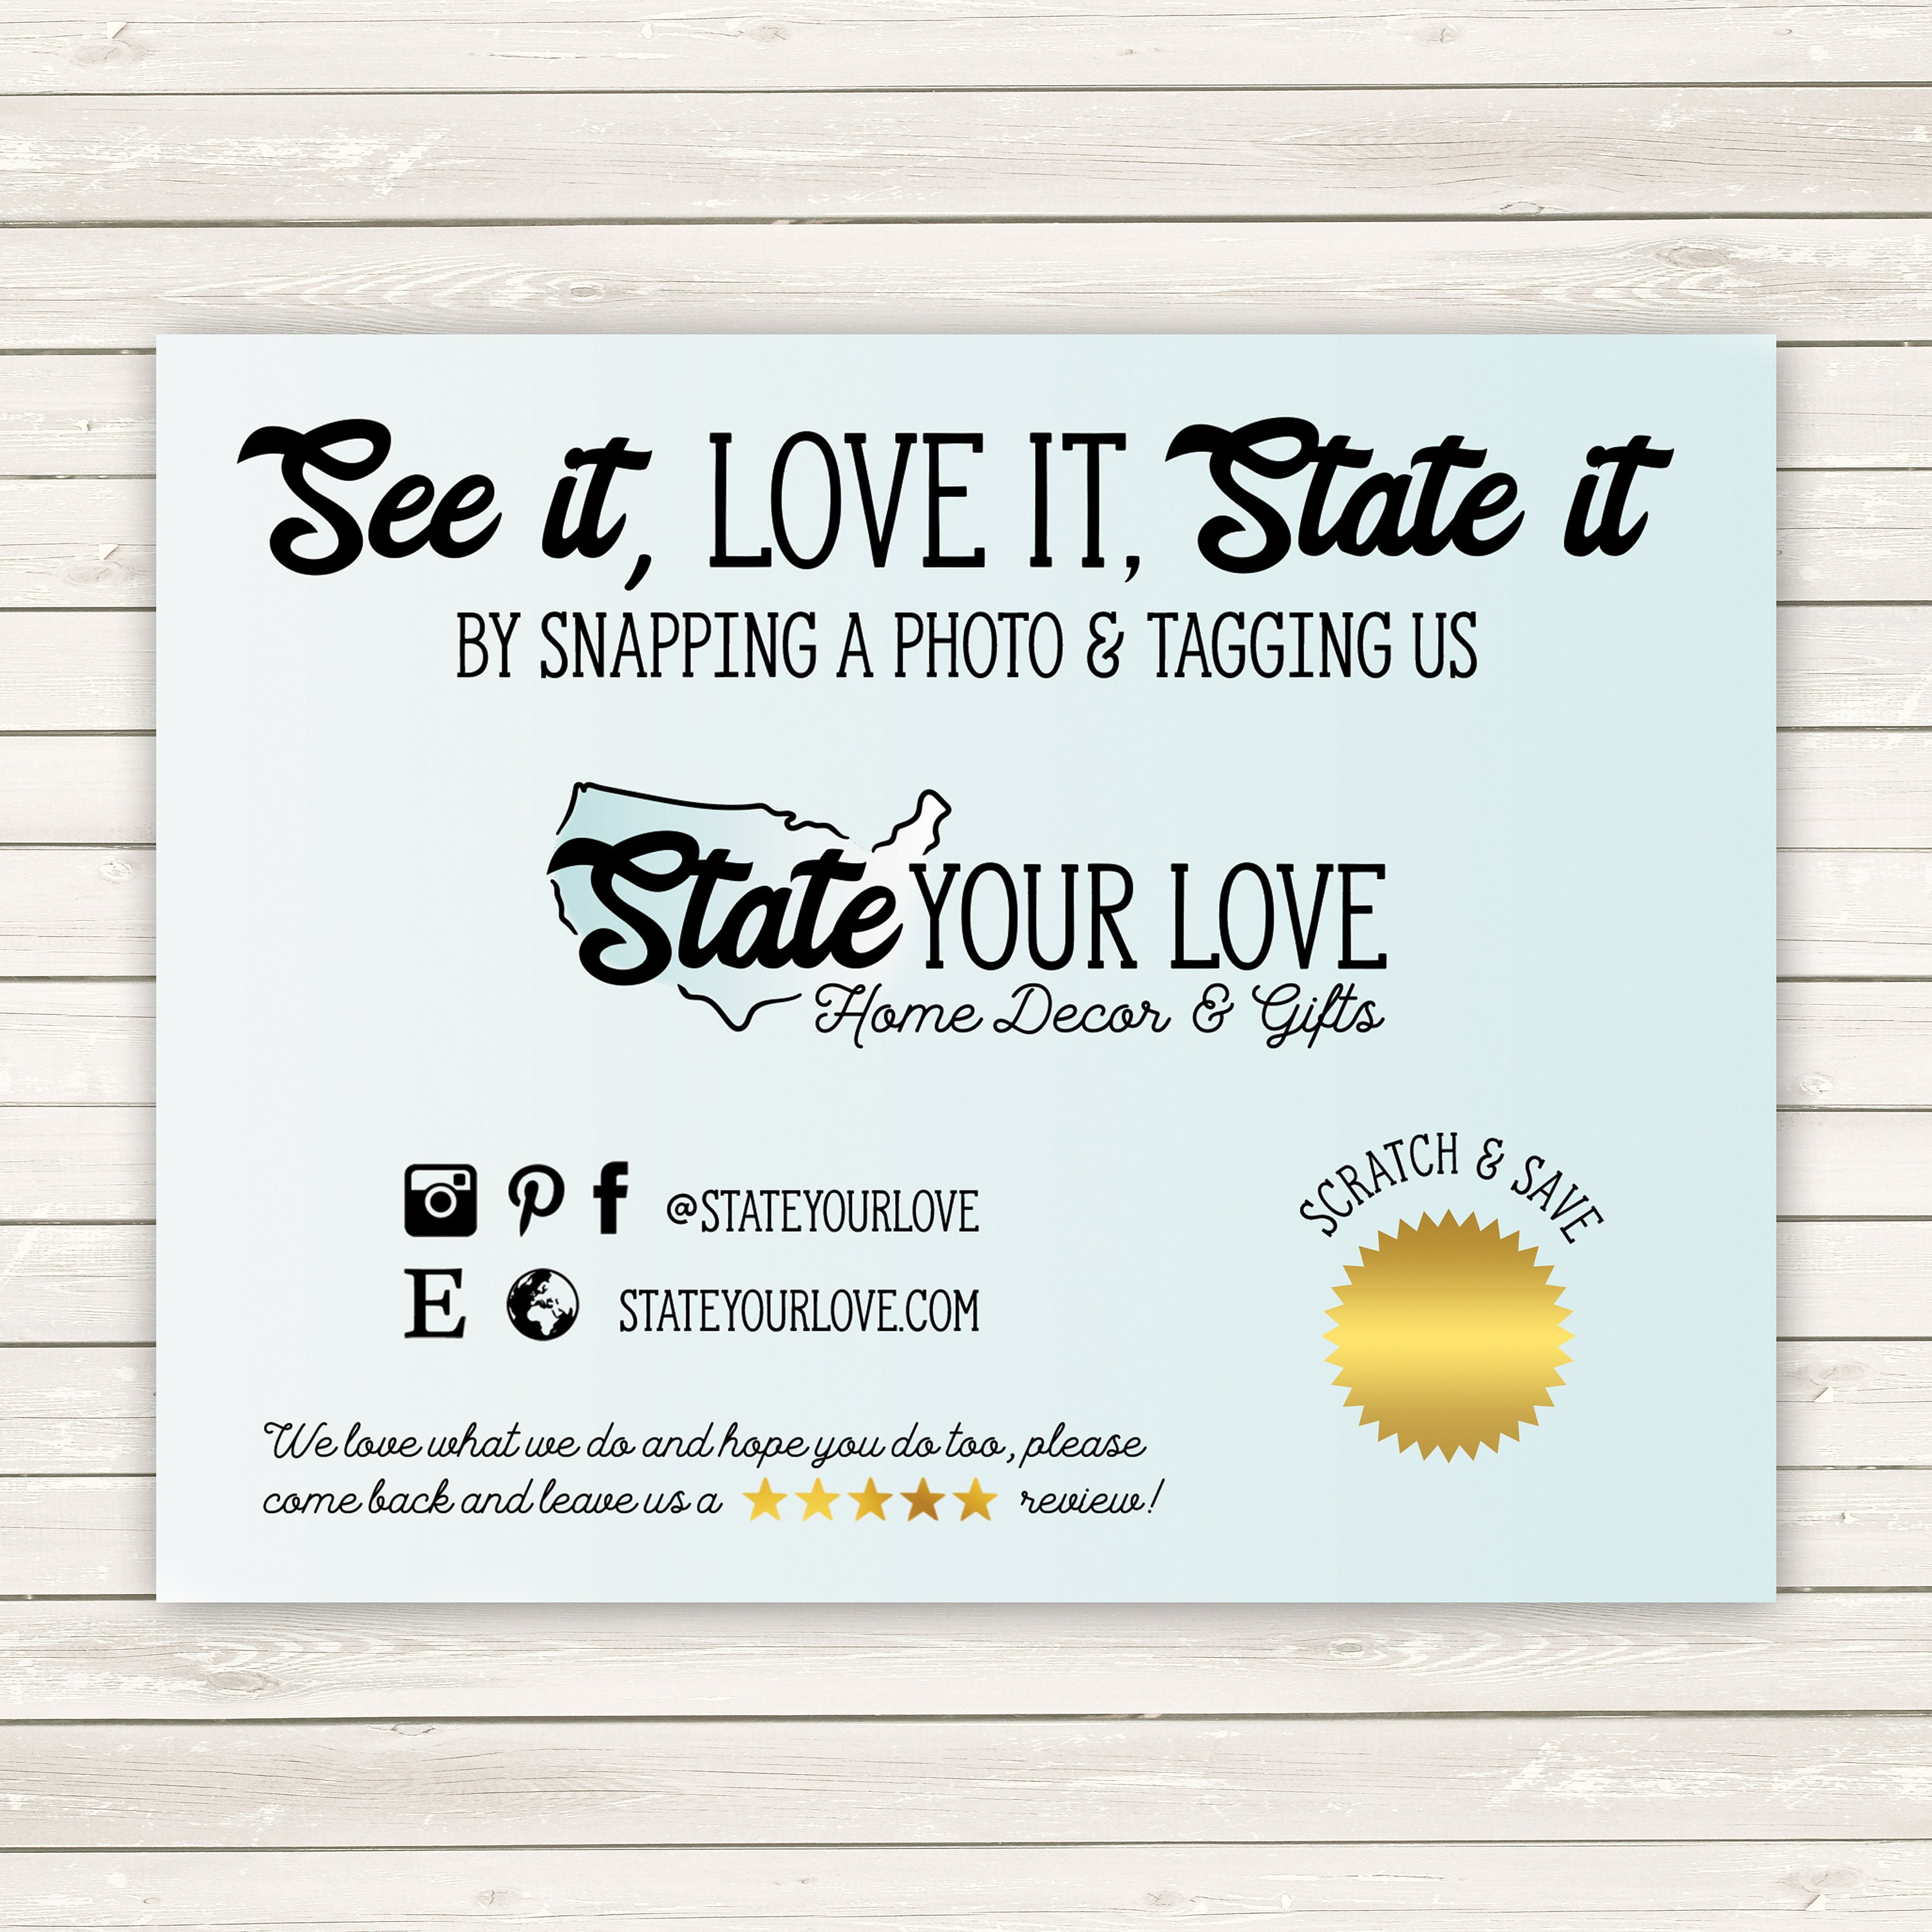 Social Media Cards, Etsy Review Cards, Etsy Thank You Notes, Snap a